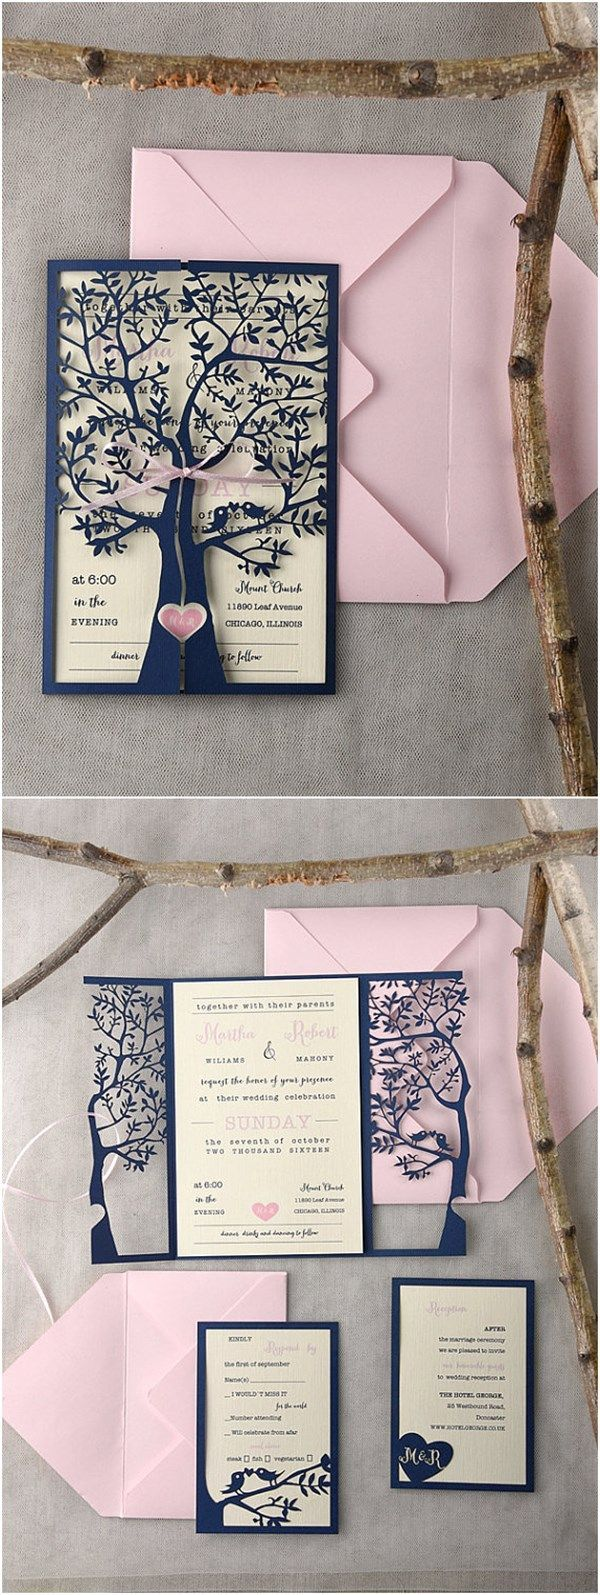 This wedding invitation is stunning! 15 Our Absolutely Favorite Rustic Wedding Invitations | http://www.deerpearlflowers.com/rustic-wedding-invitations/